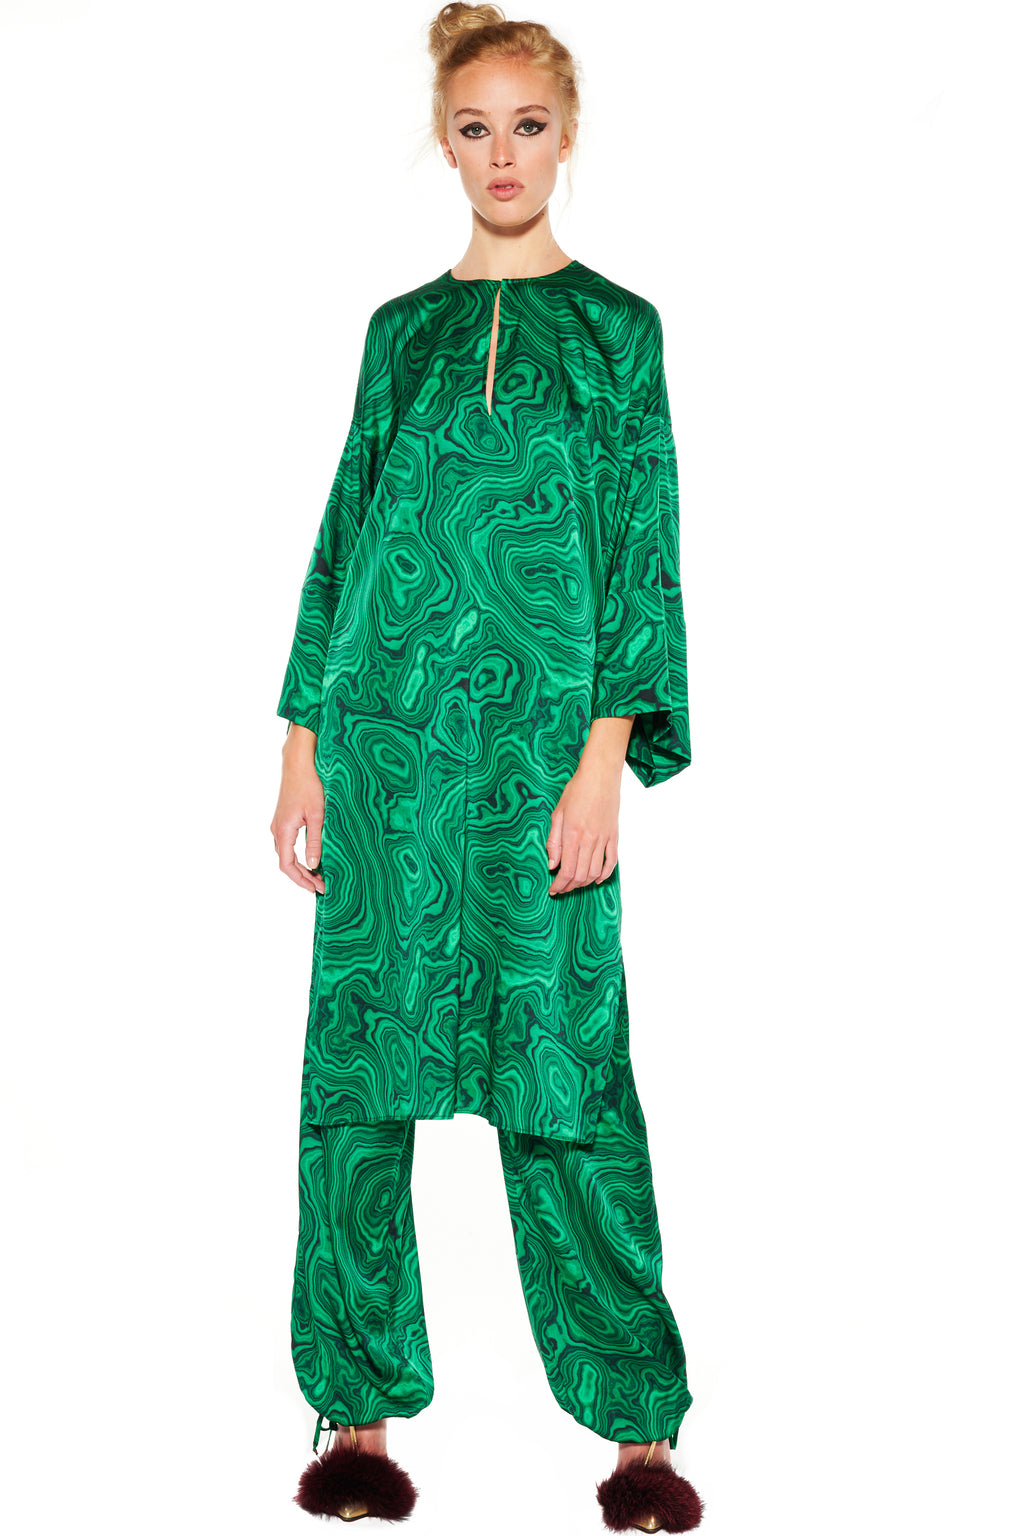 'HIGH AS A MALACHITE' TUNIC - Web Exclusives - Libertine